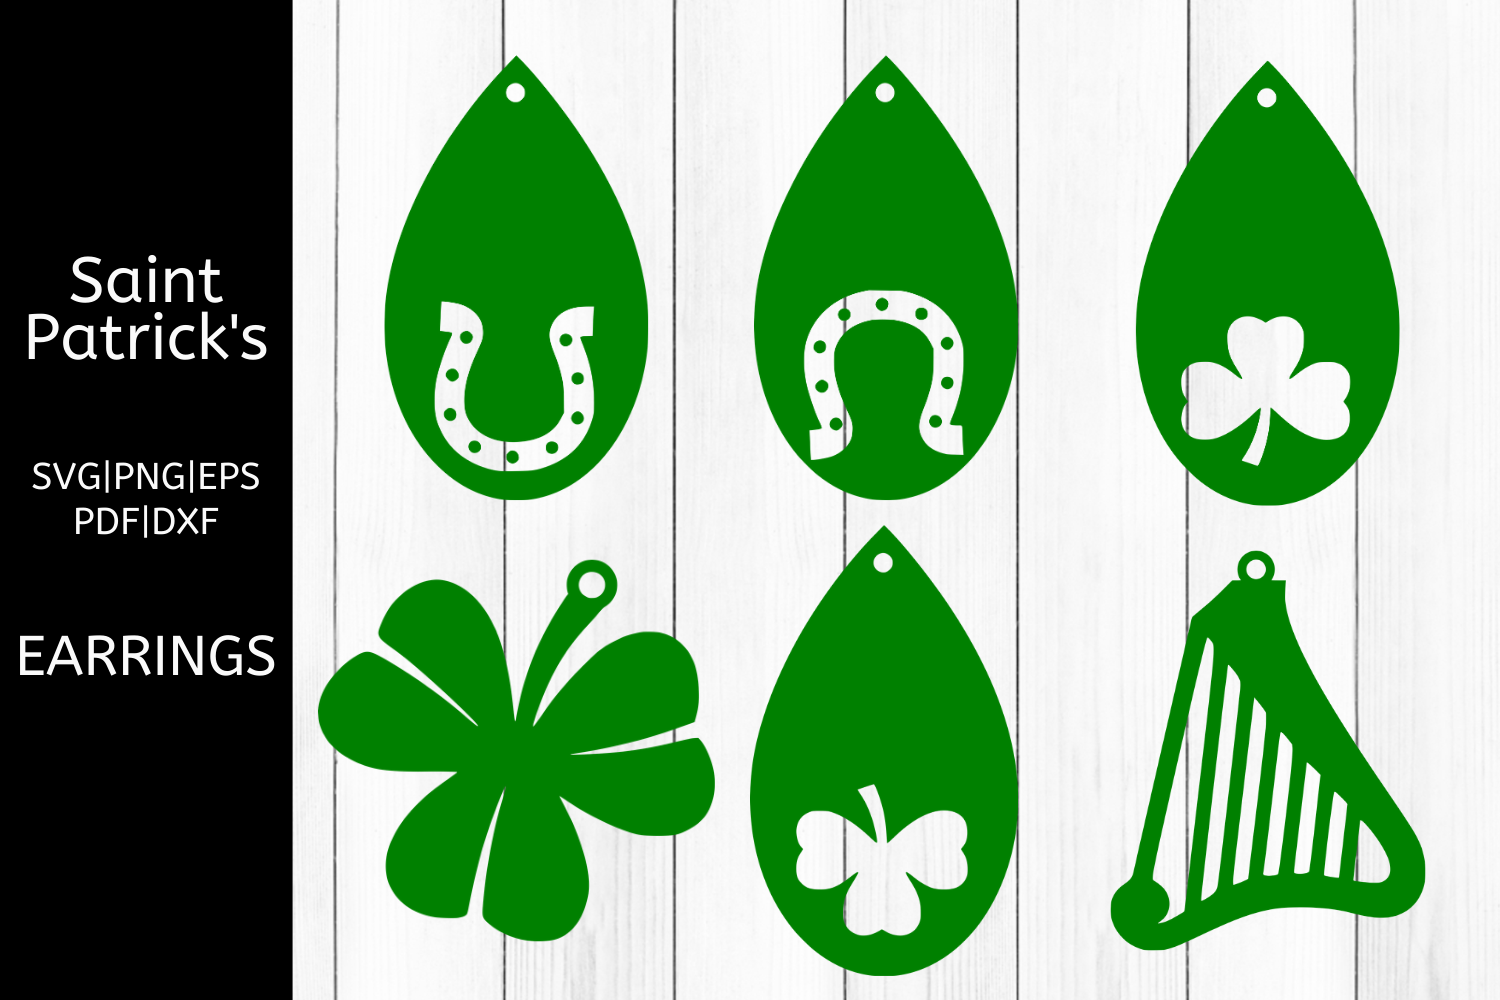 Download Free Saint Patrick S Earrings Files 6 Graphic By Mockup Venue for Cricut Explore, Silhouette and other cutting machines.